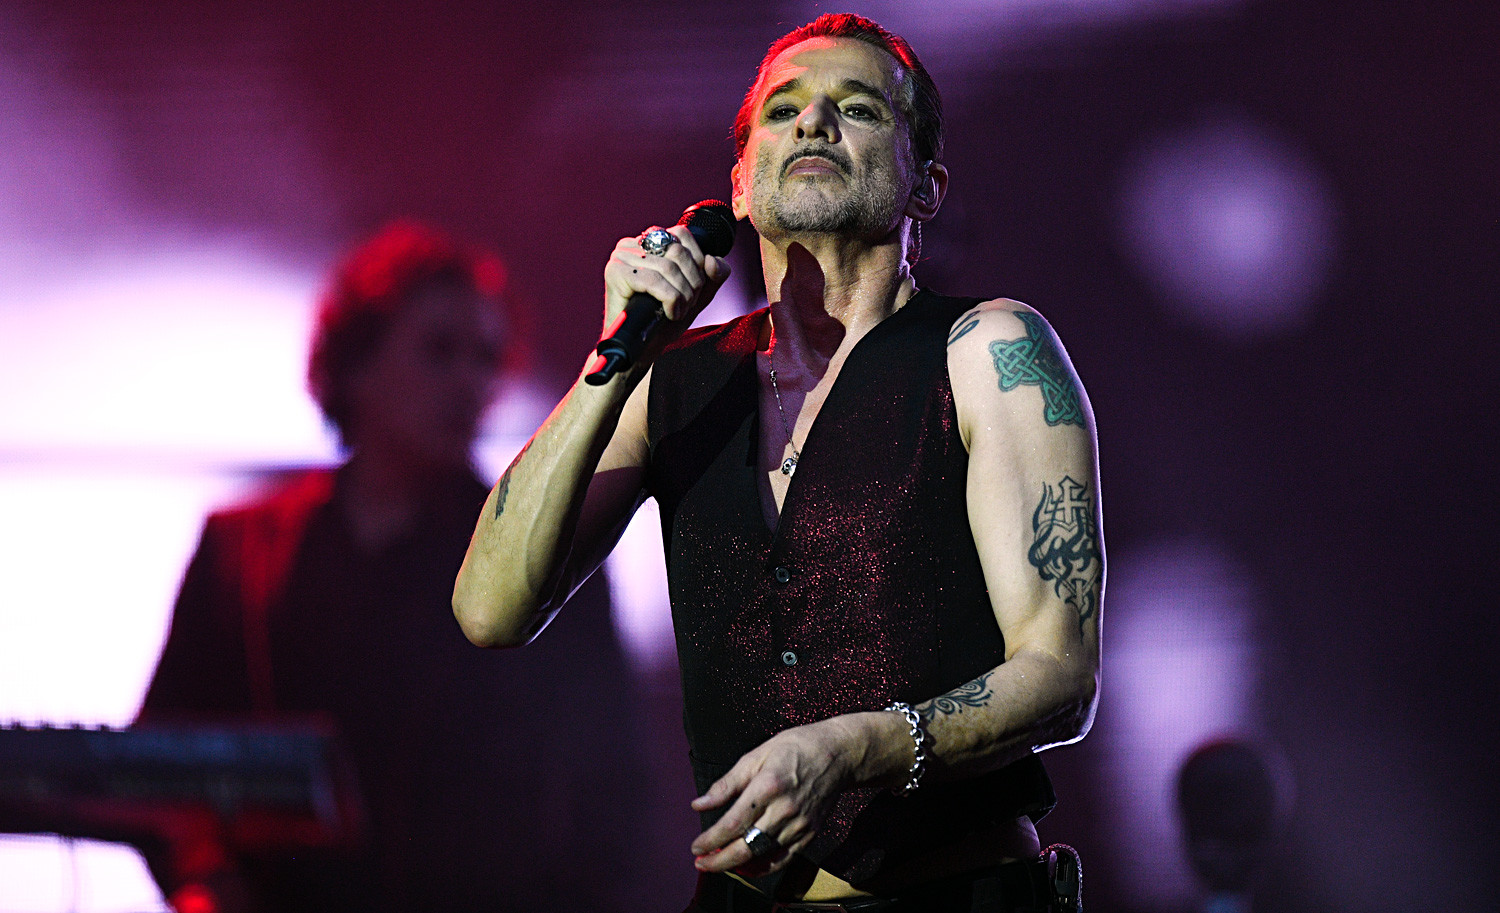 Depeche Mode vocalist Dave Gahan performs live at the Otkrytiye Arena stadium in Moscow as part of the band's Global Spirit Tour.